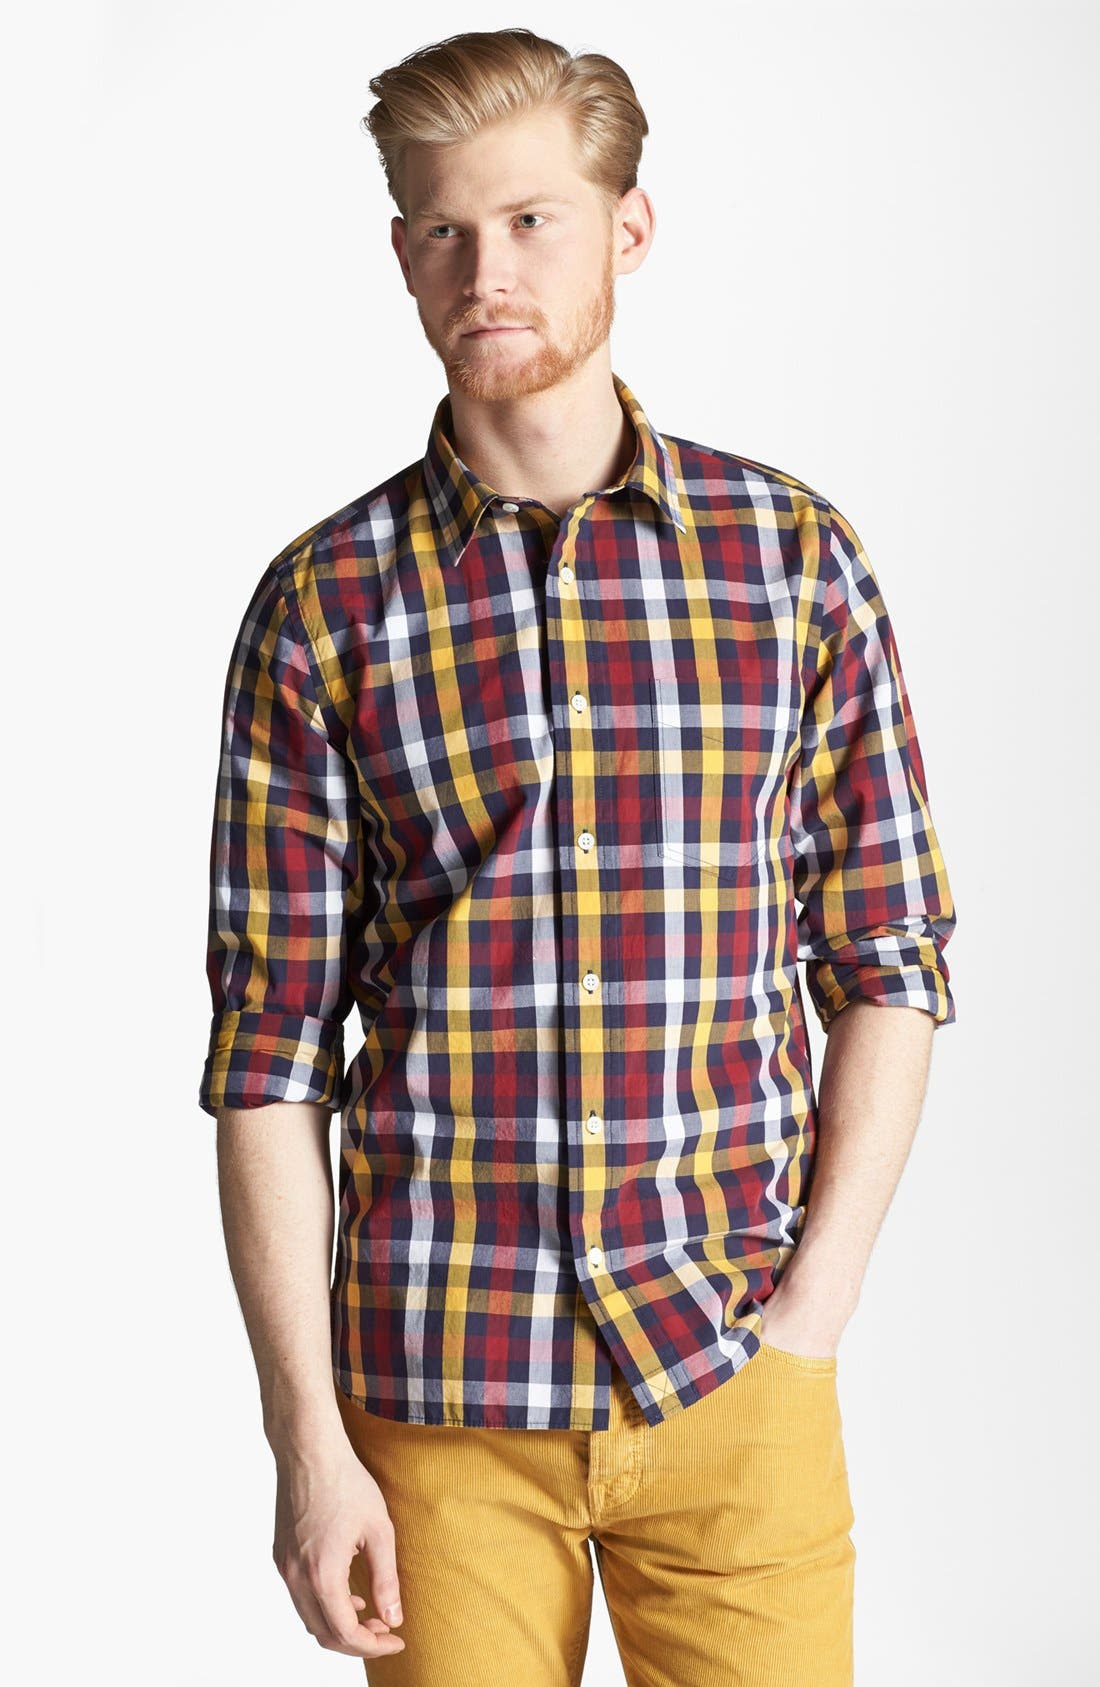 Alternate Image 1 Selected - Jack Spade 'Sid' Plaid Woven Shirt